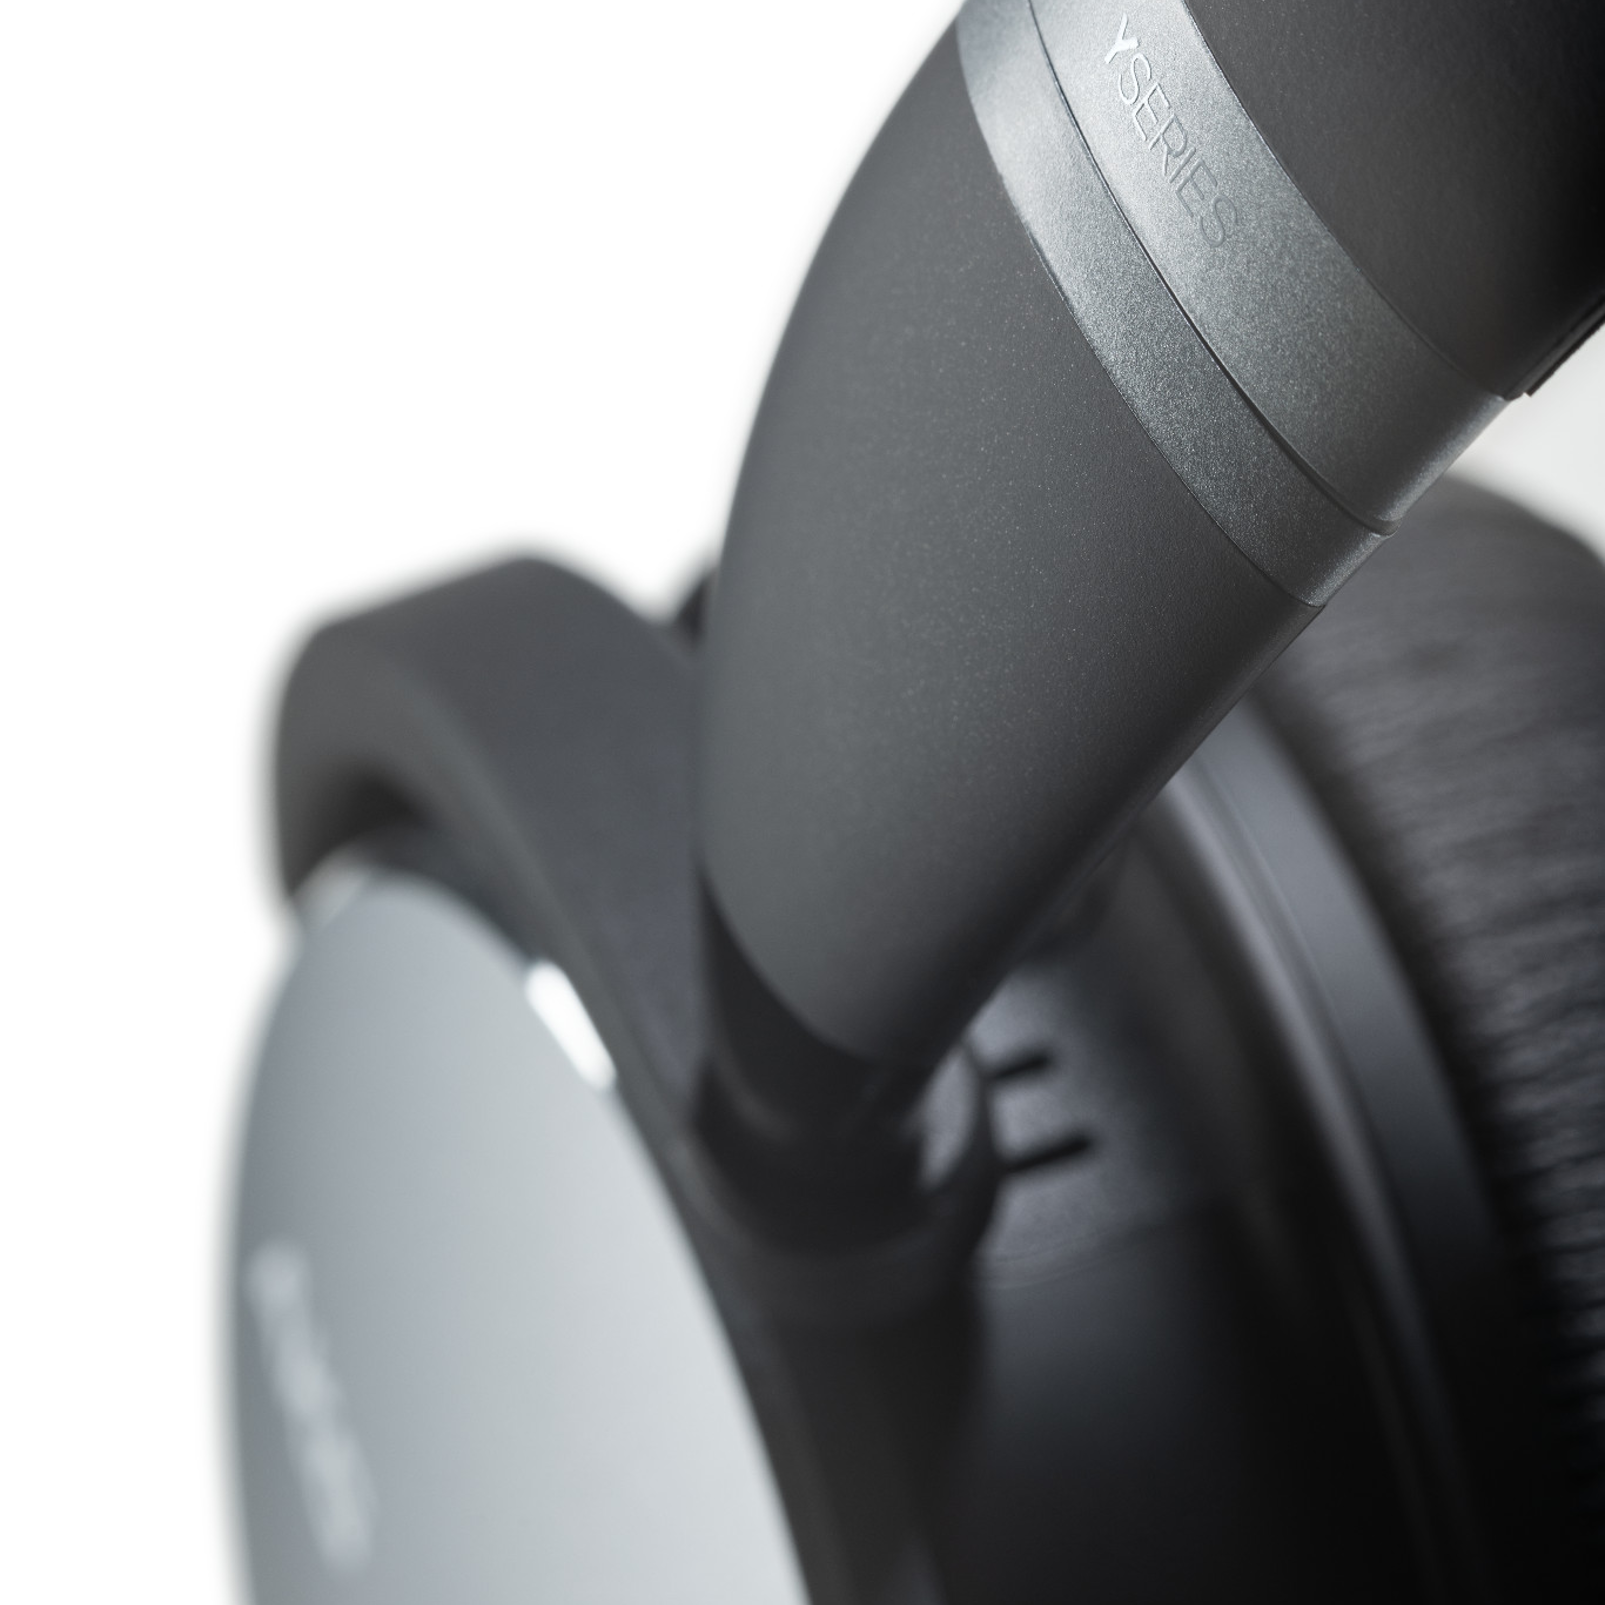 AKG Y600NC WIRELESS - Gun Metal - Wireless over-ear NC headphones - Detailshot 1